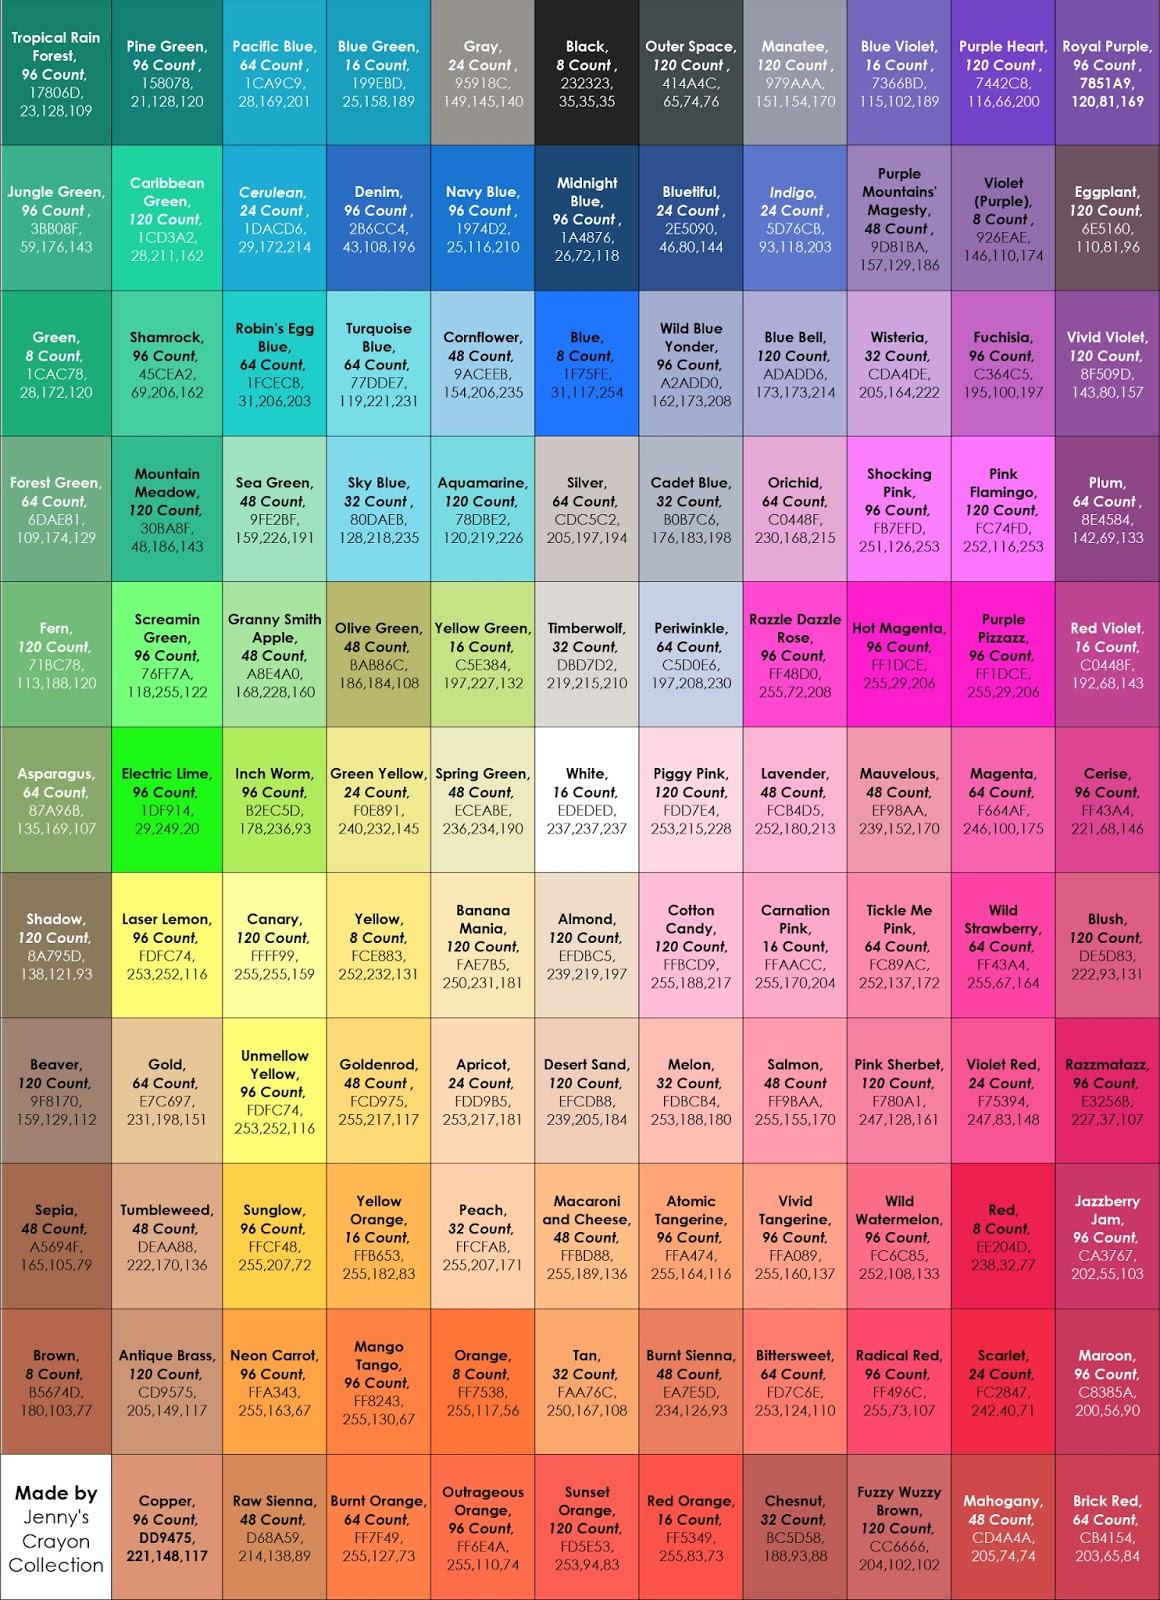 Funny Crayon Names : funny, crayon, names, Complete, Current, Crayola, Crayon, Colors, Jenny's, Collection